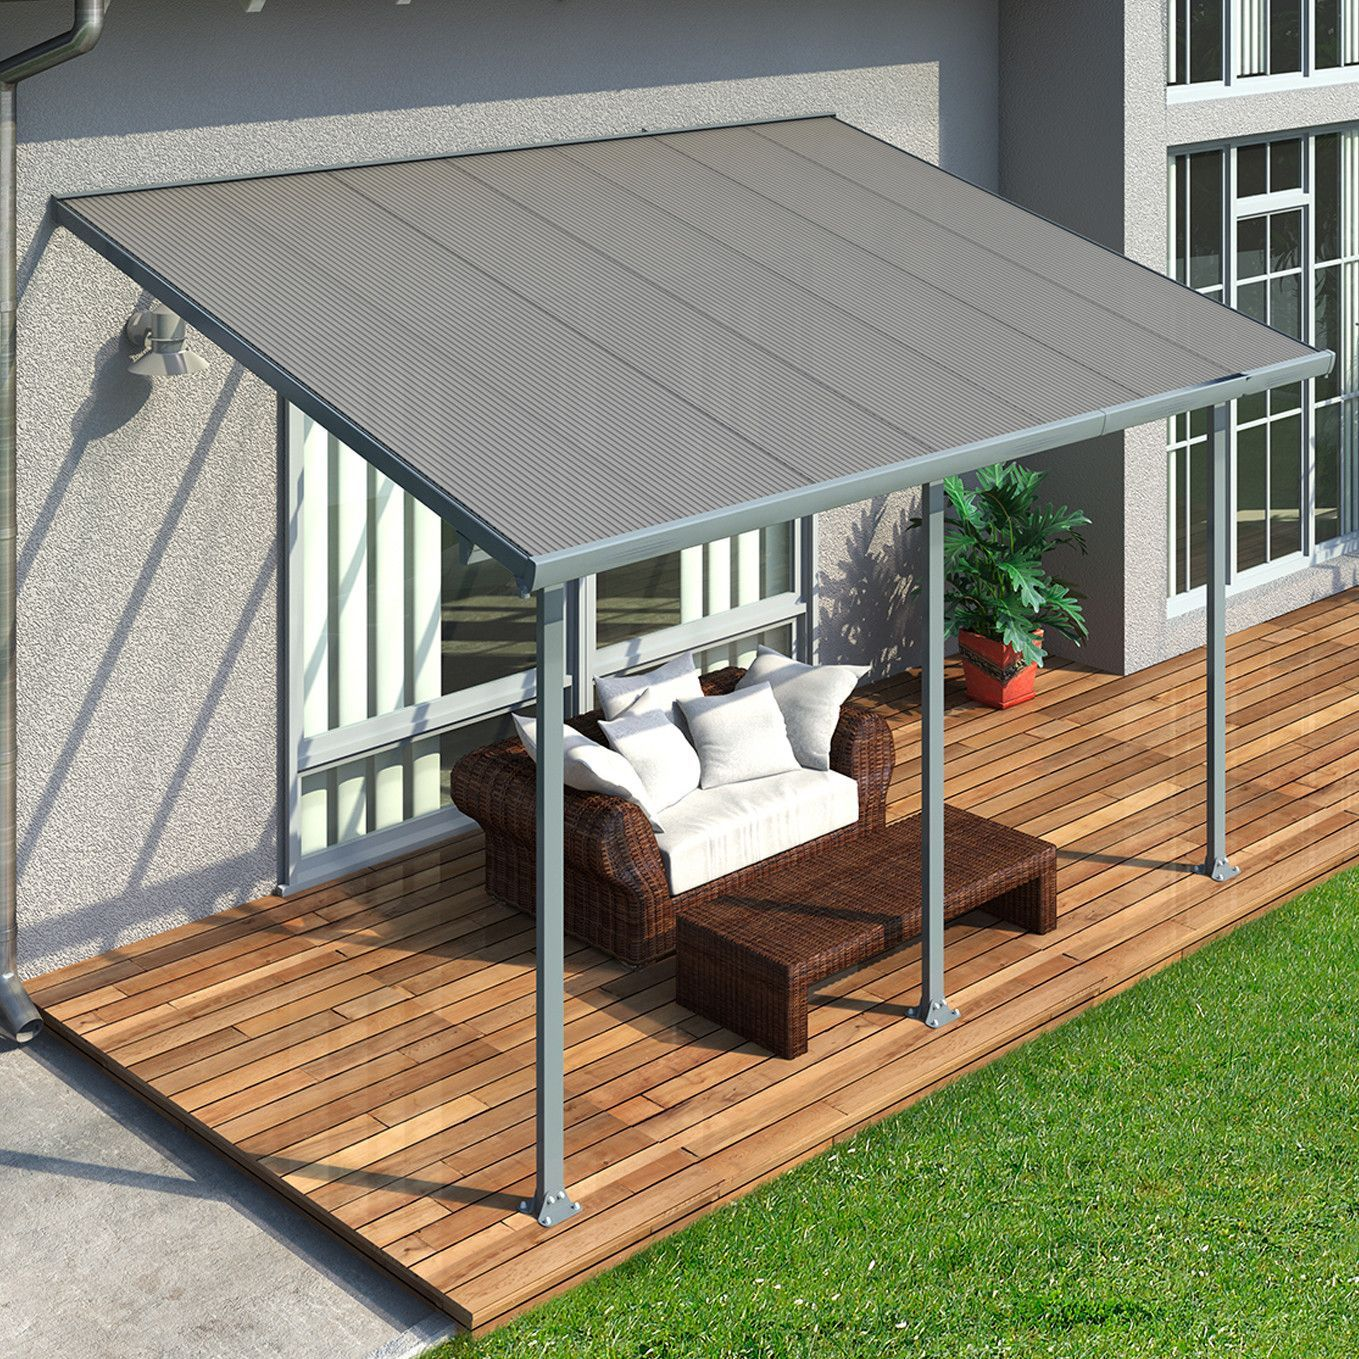 Feria 14 Ft W X 9 5 Ft D Patio Awning Pergola Patio